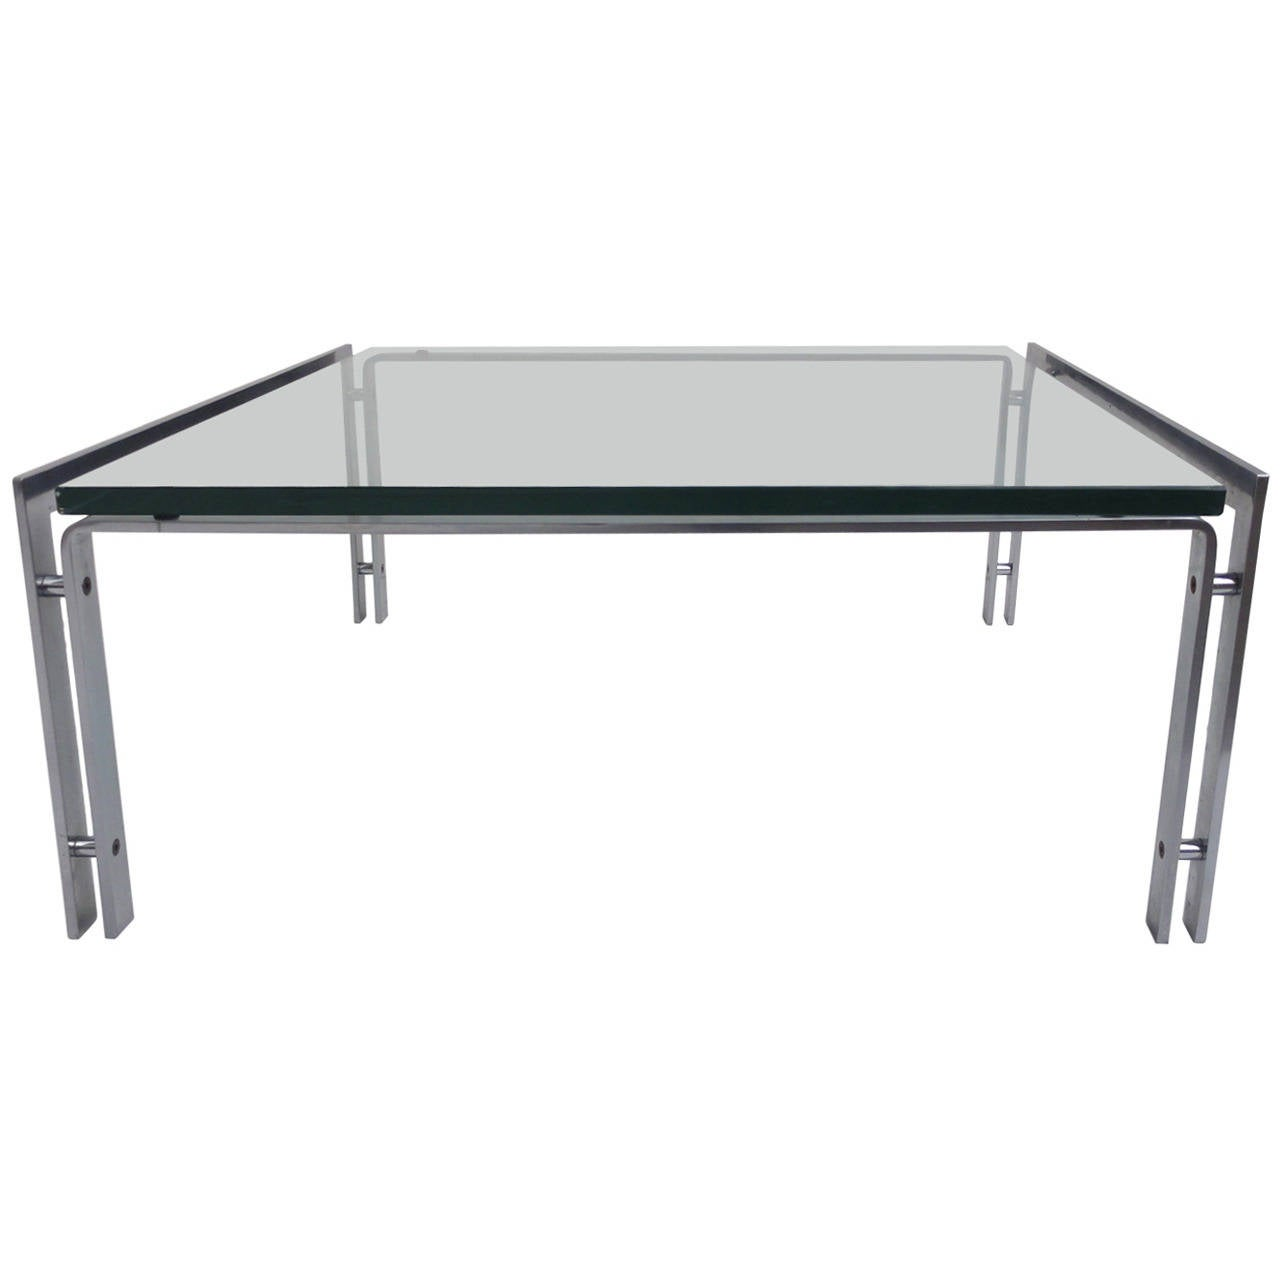 Dutch metaform steel and glass coffee table in the style of poul kjaerholm for sale at 1stdibs Steel and glass coffee table